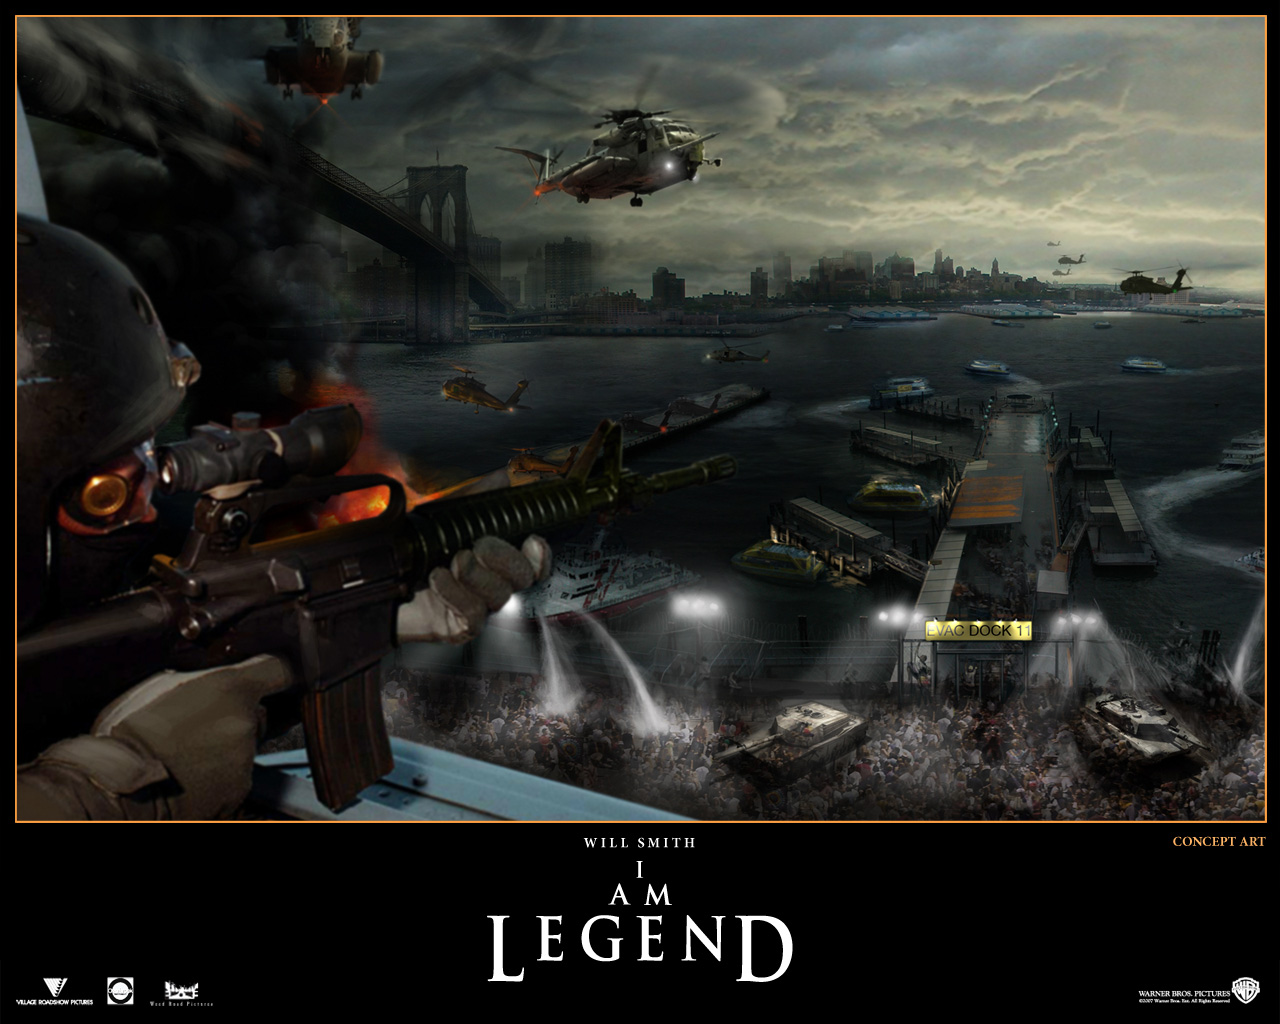 Am Legend Military Wallpapers I Am Legend Military HD Wallpapers 1280x1024